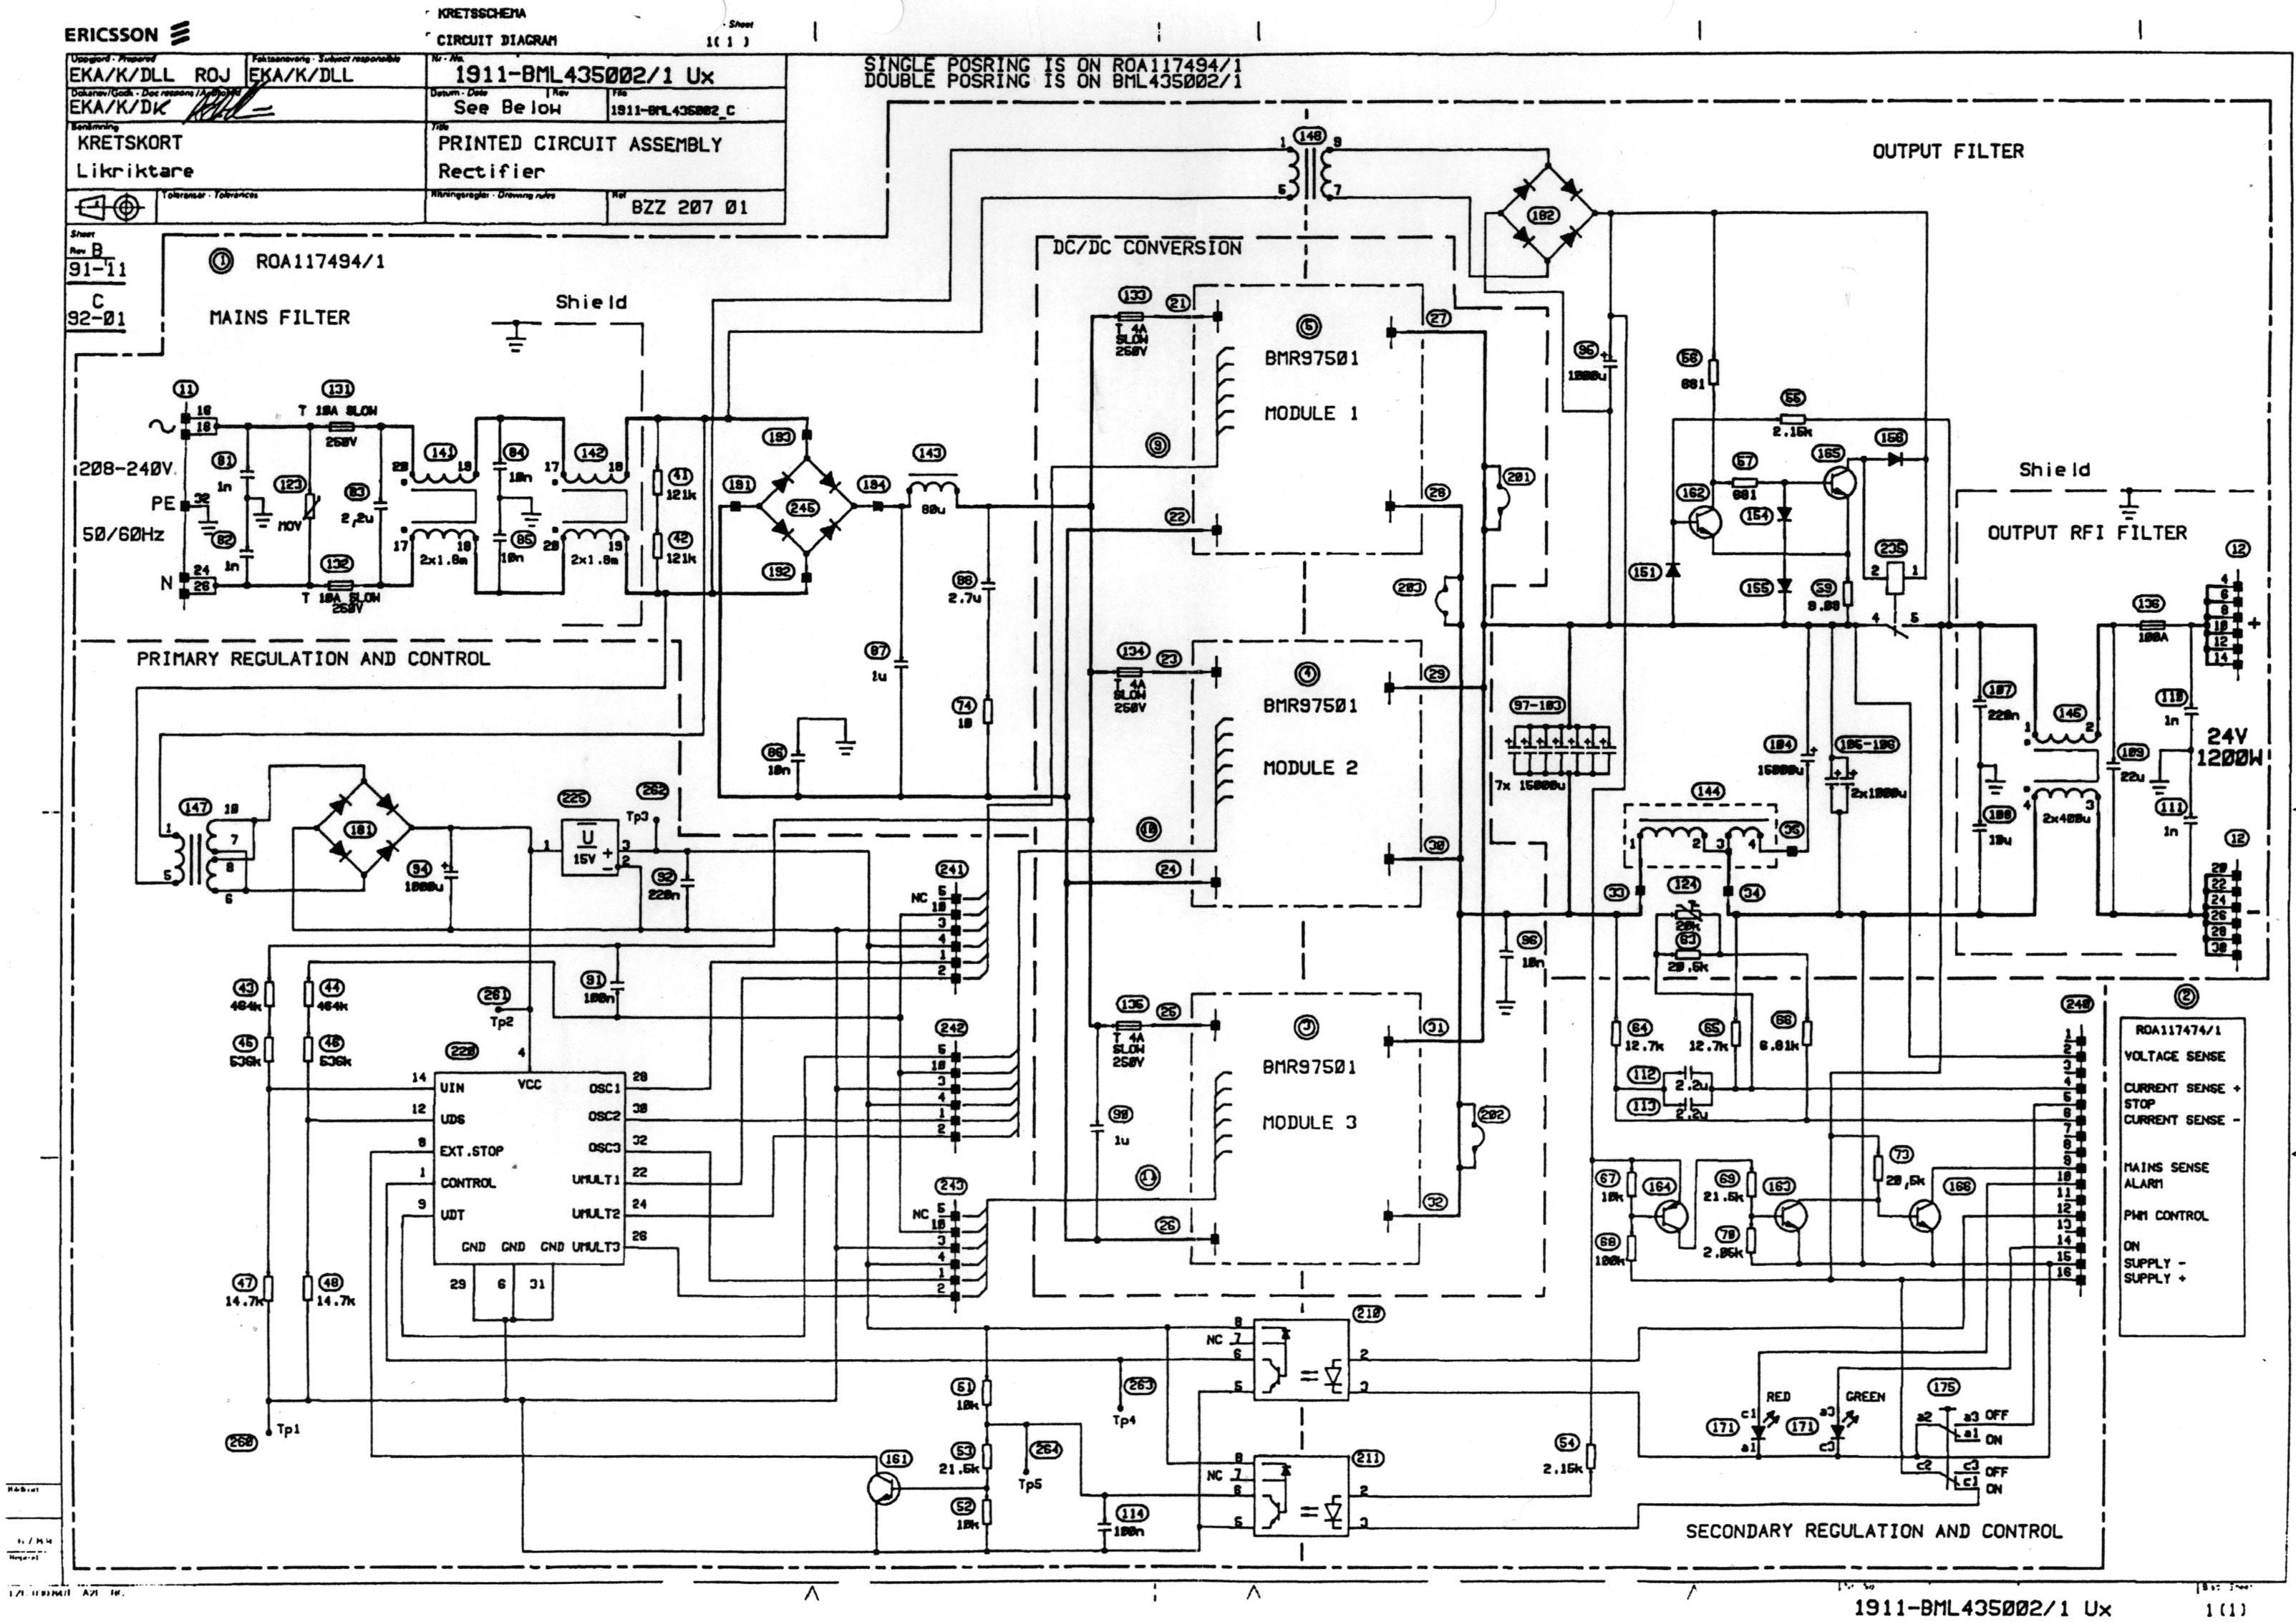 What Is A Schematic on ladder logic, whats a software, whats a thematic map, piping and instrumentation diagram, function block diagram, straight-line diagram, whats a illustration, whats a output, diagramming software, circuit diagram, whats a tool, one-line diagram, whats a layout, whats a monitor, whats a amplifier, block diagram, electronic design automation, schematic capture, data flow diagram, whats a symbol, whats a transistor, whats a introduction, control flow diagram, tube map, whats a operation, whats a cable, cross section, technical drawing, schematic editor, whats a interface, whats a breadboard, whats a architecture, whats a power, whats a circuit, functional flow block diagram, whats a block, whats a drawing,